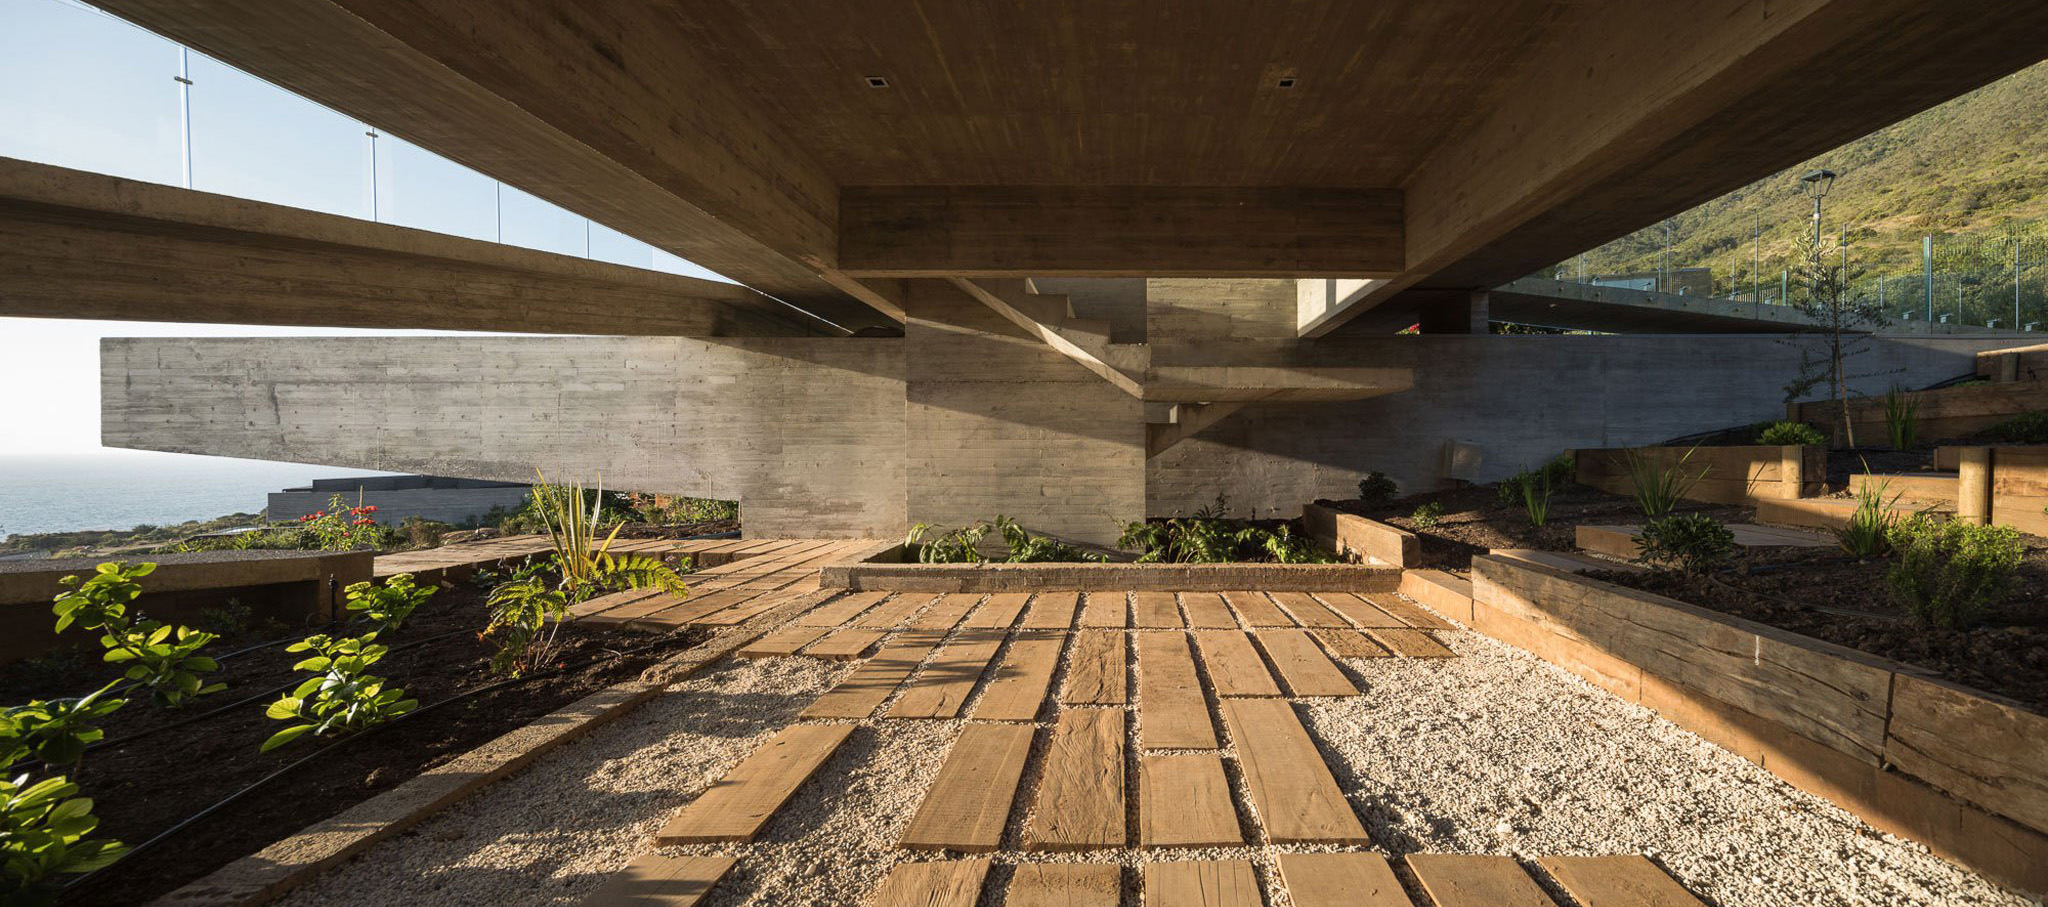 H house by Felipe Assadi Arquitectos. Photograph by Fernando Alda